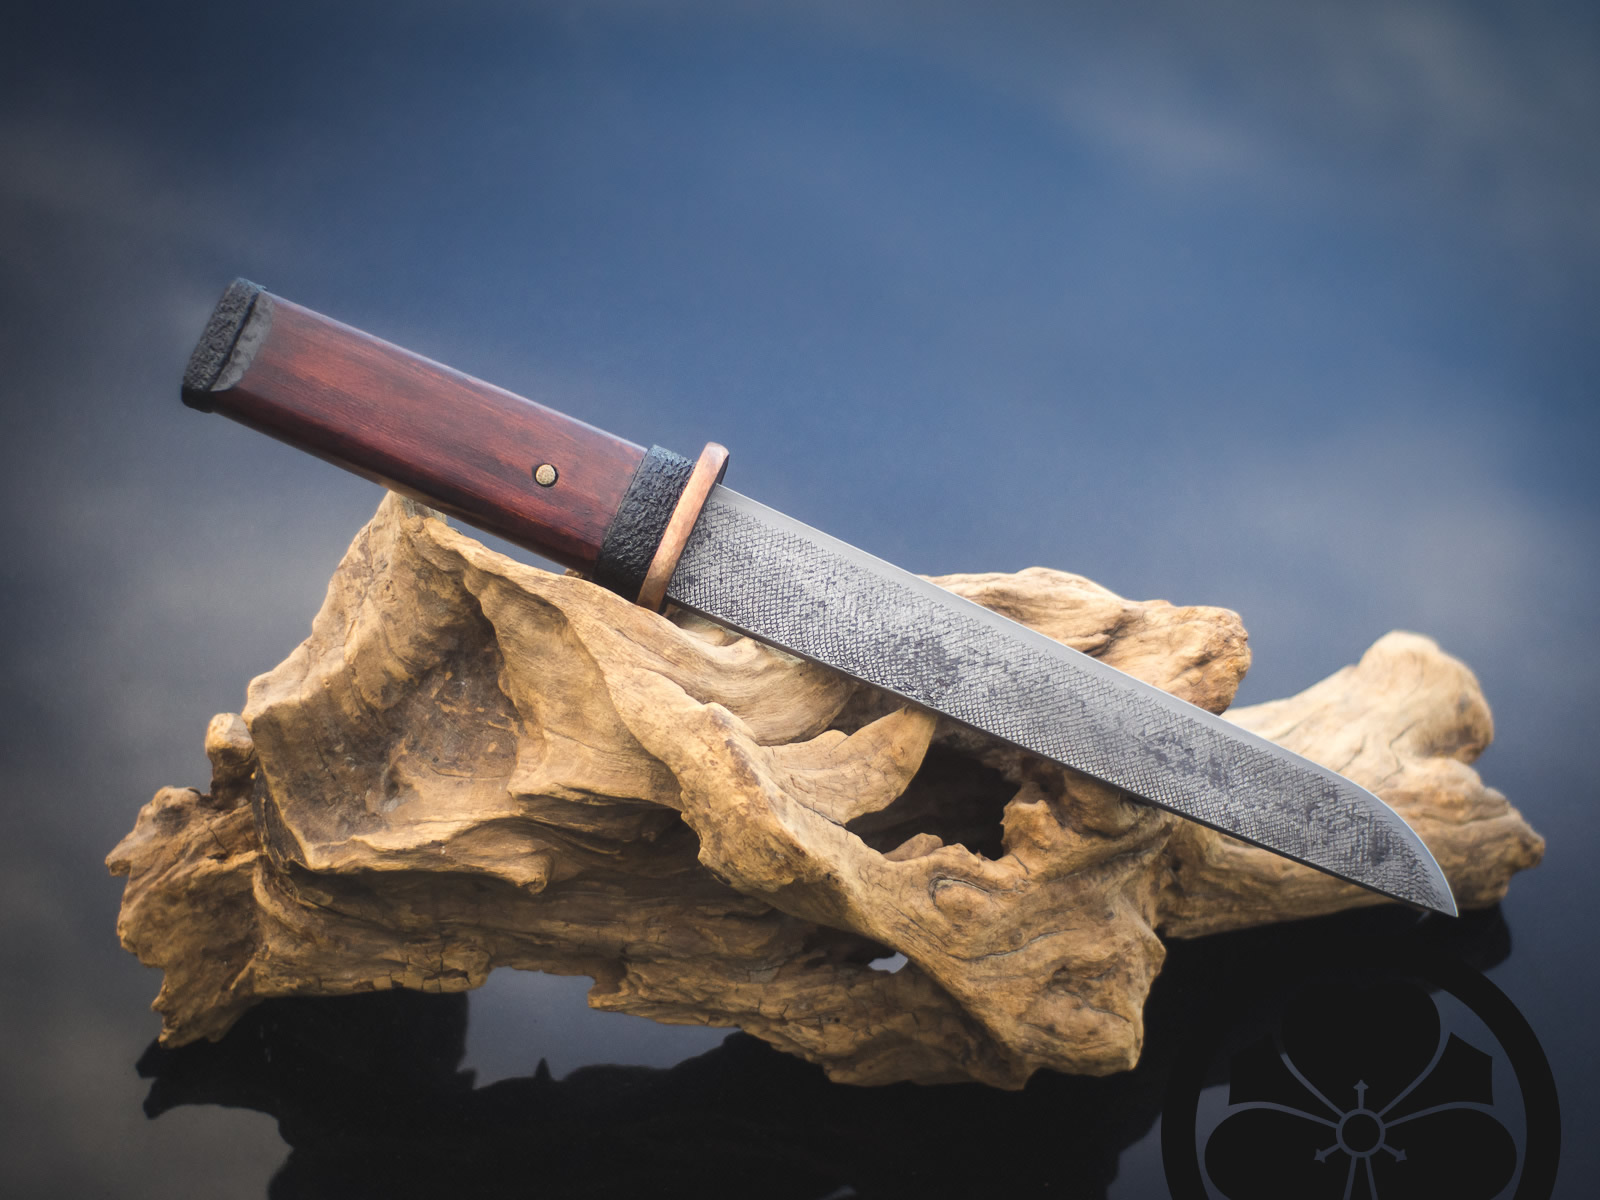 Island Blacksmith: Charcoal forged tanto reclaimed from files.